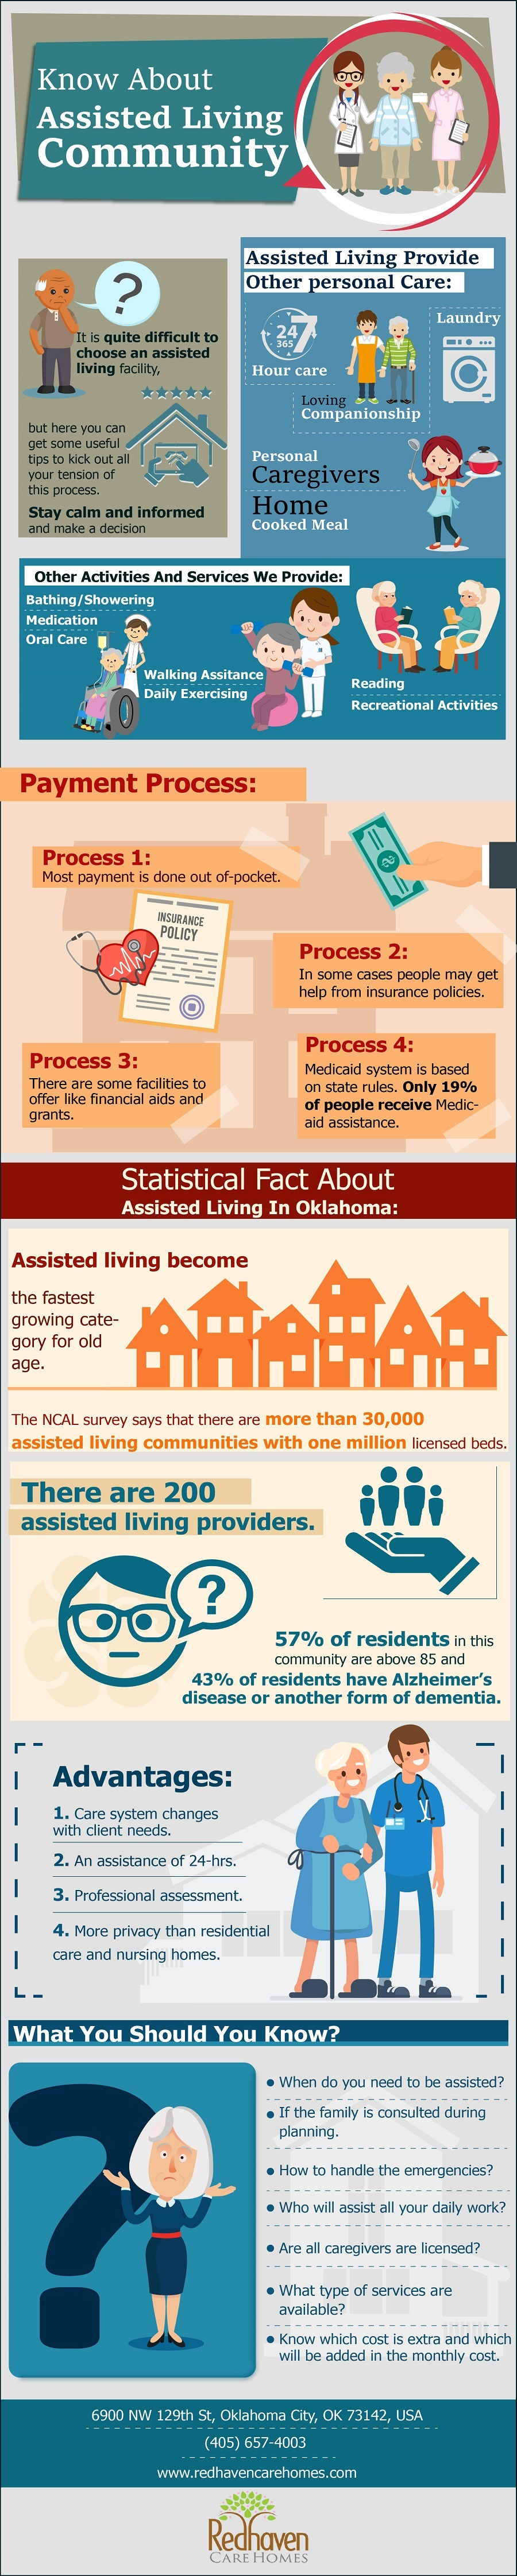 Know About Assisted Living Community